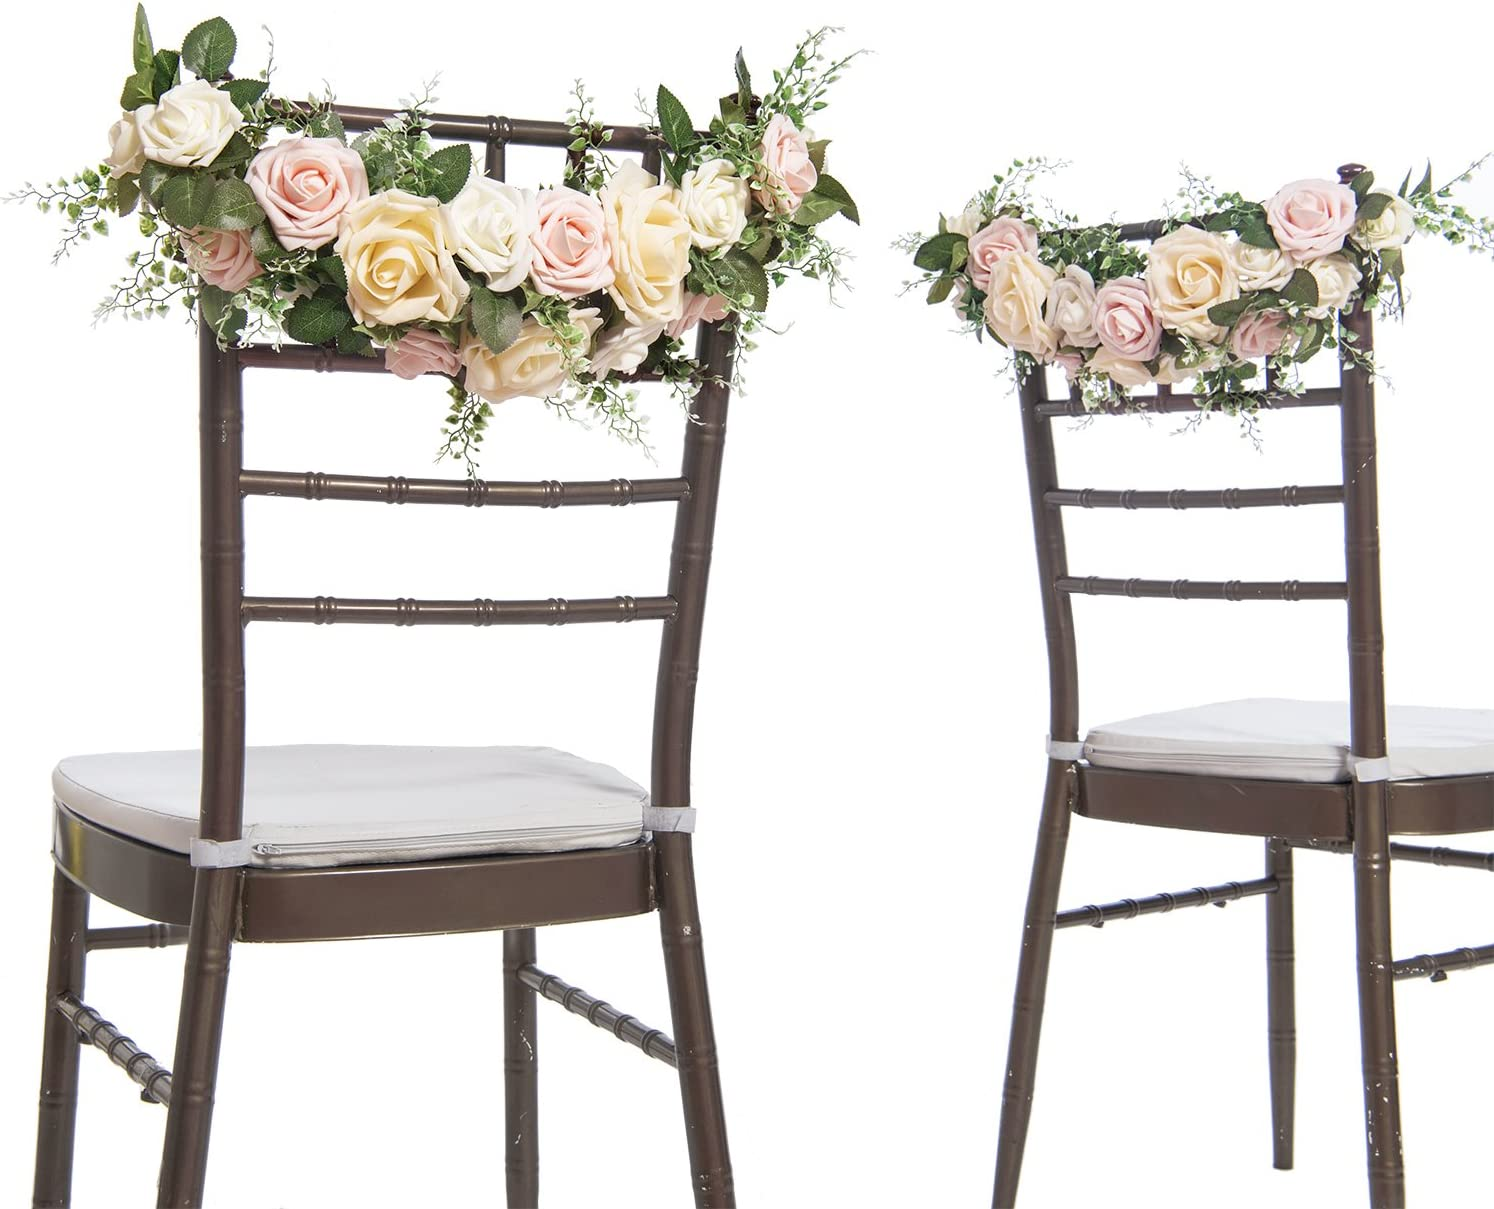 Ling's moment Chair Decor for Wedding Chair Banners for Wedding Chair Signs Garland Bride and Groom Floral Chair Decor (Pack of 2)